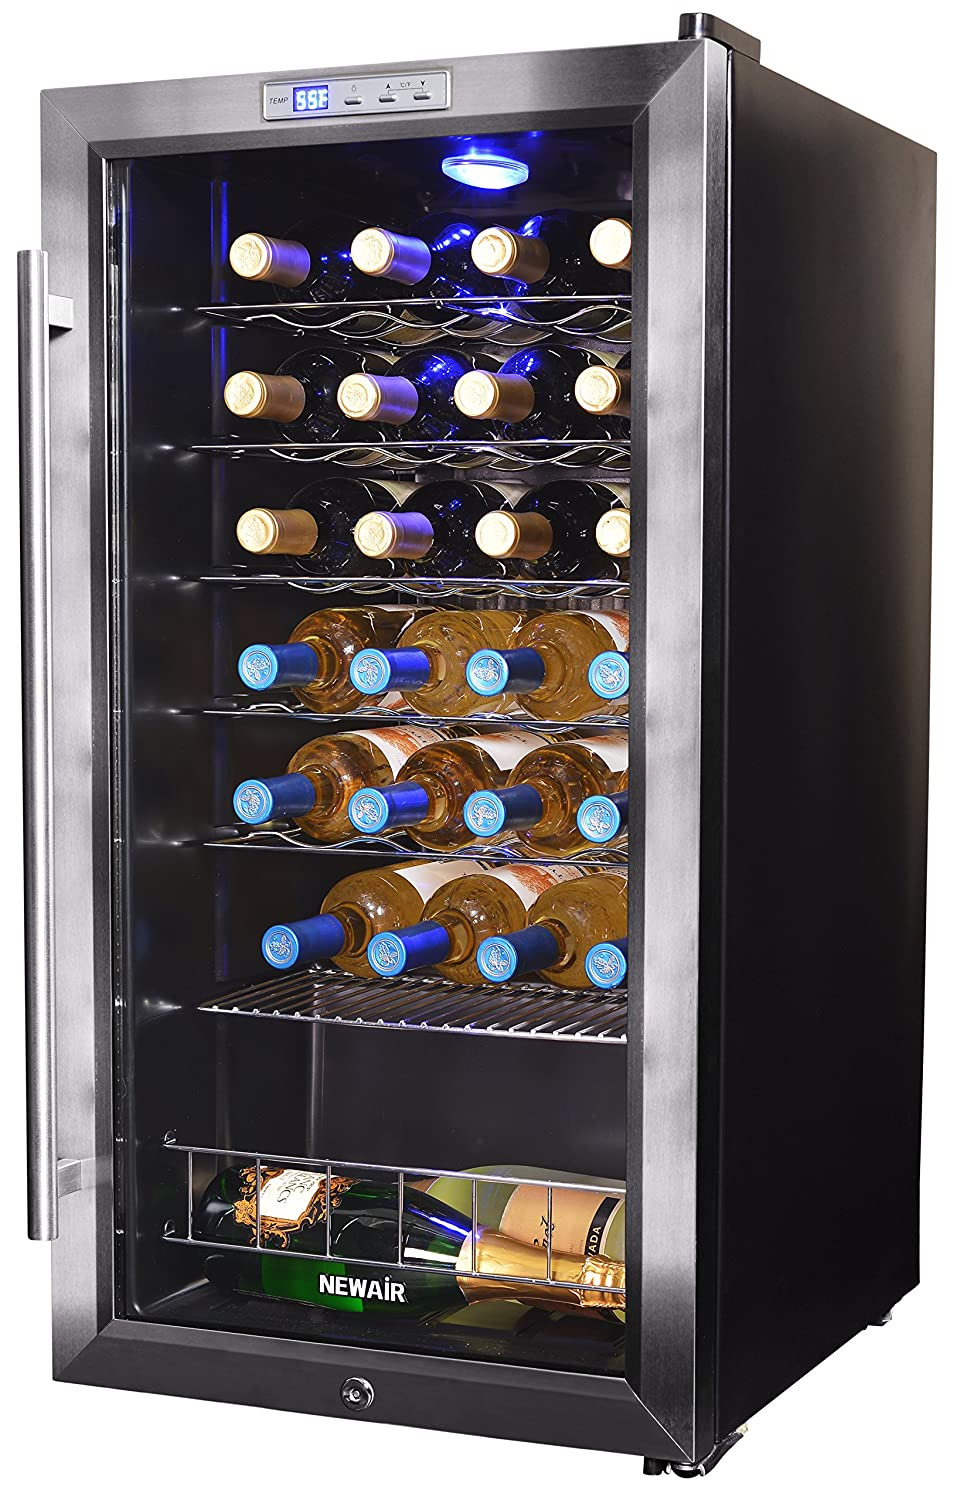 NewAir AWC-270E Wine Cooler 27 Bottle Stainless Steel